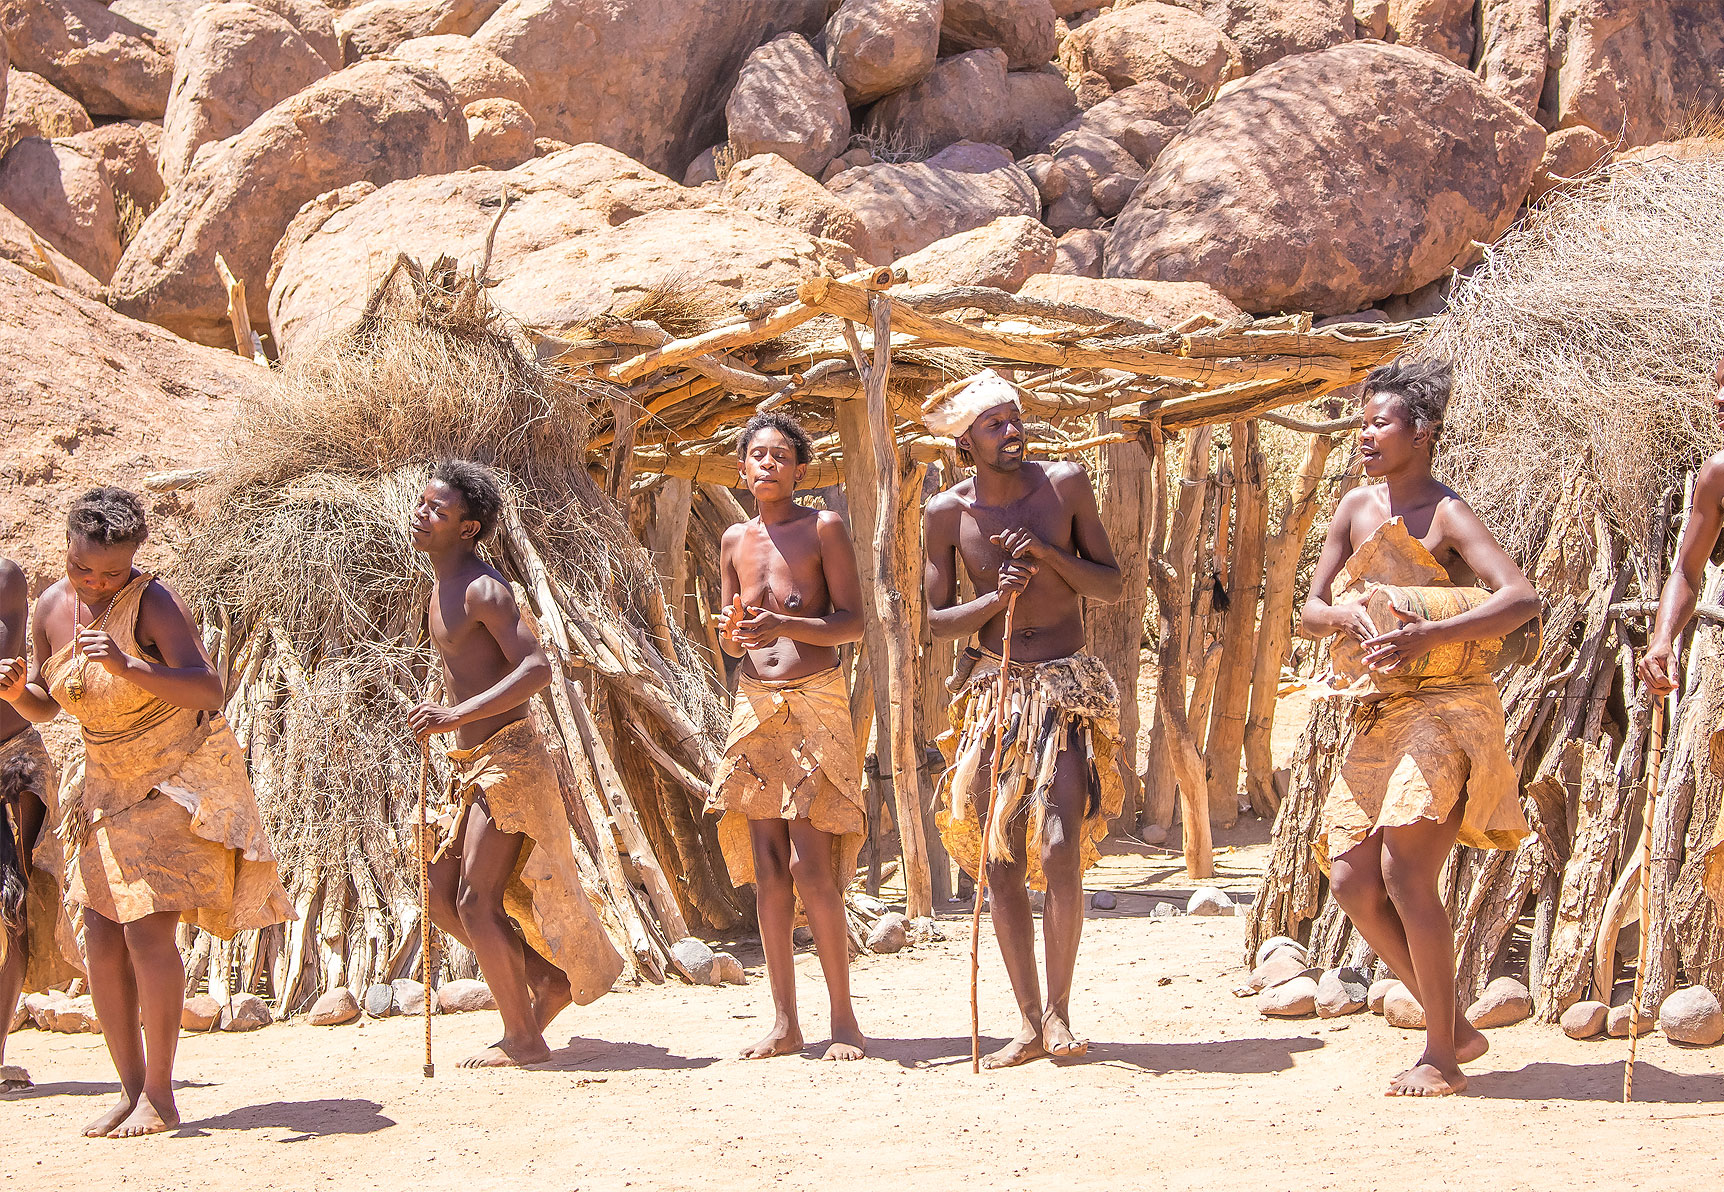 Top 10 Things To Do in Namibia inline image 5bfd0a16ce226